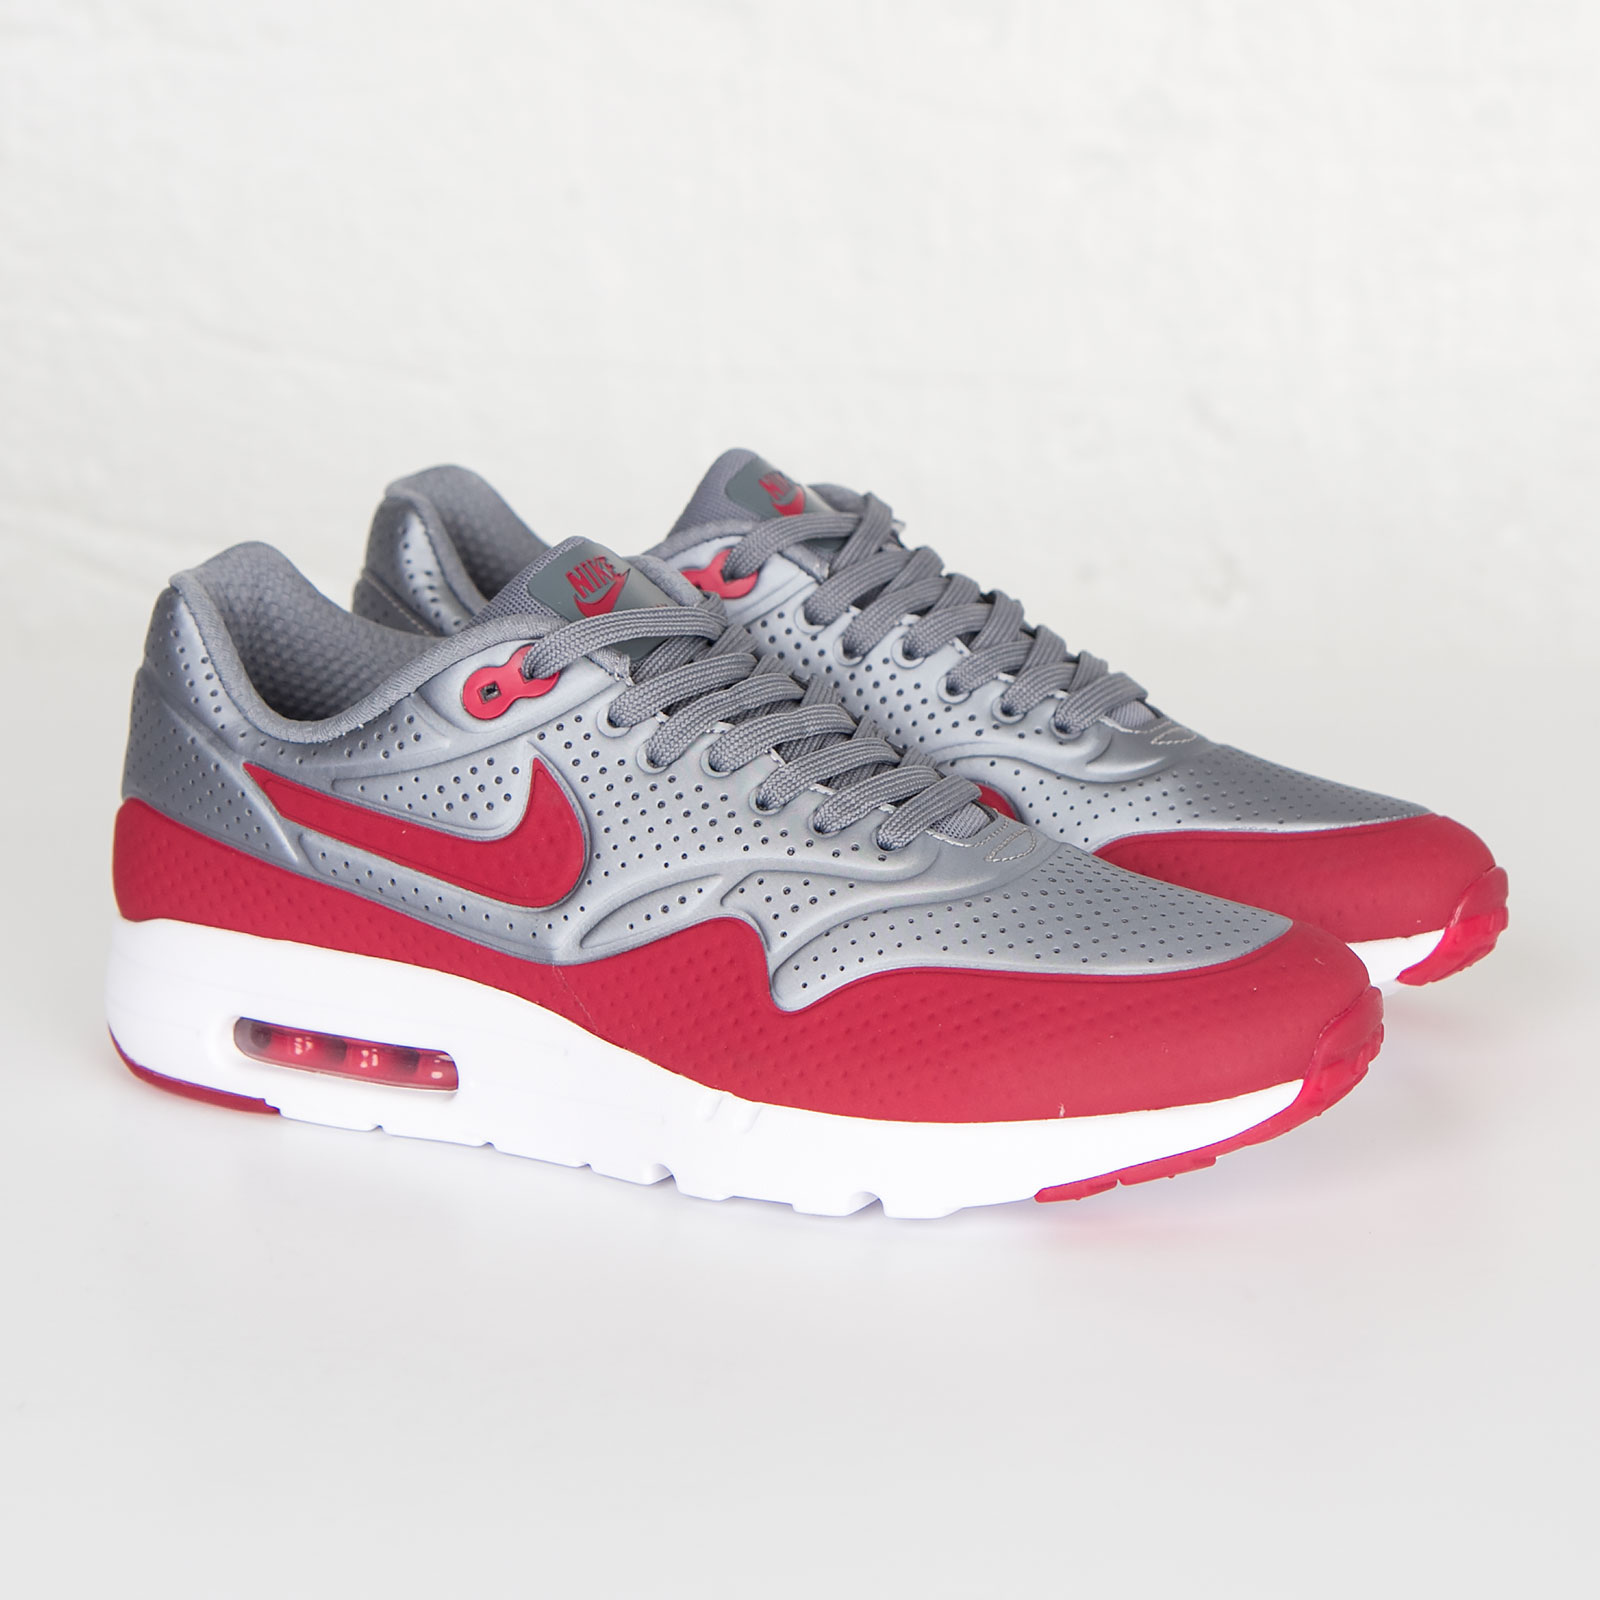 be29ec37f55a1 Nike Air Max 1 Ultra Moire - 705297-006 - Sneakersnstuff